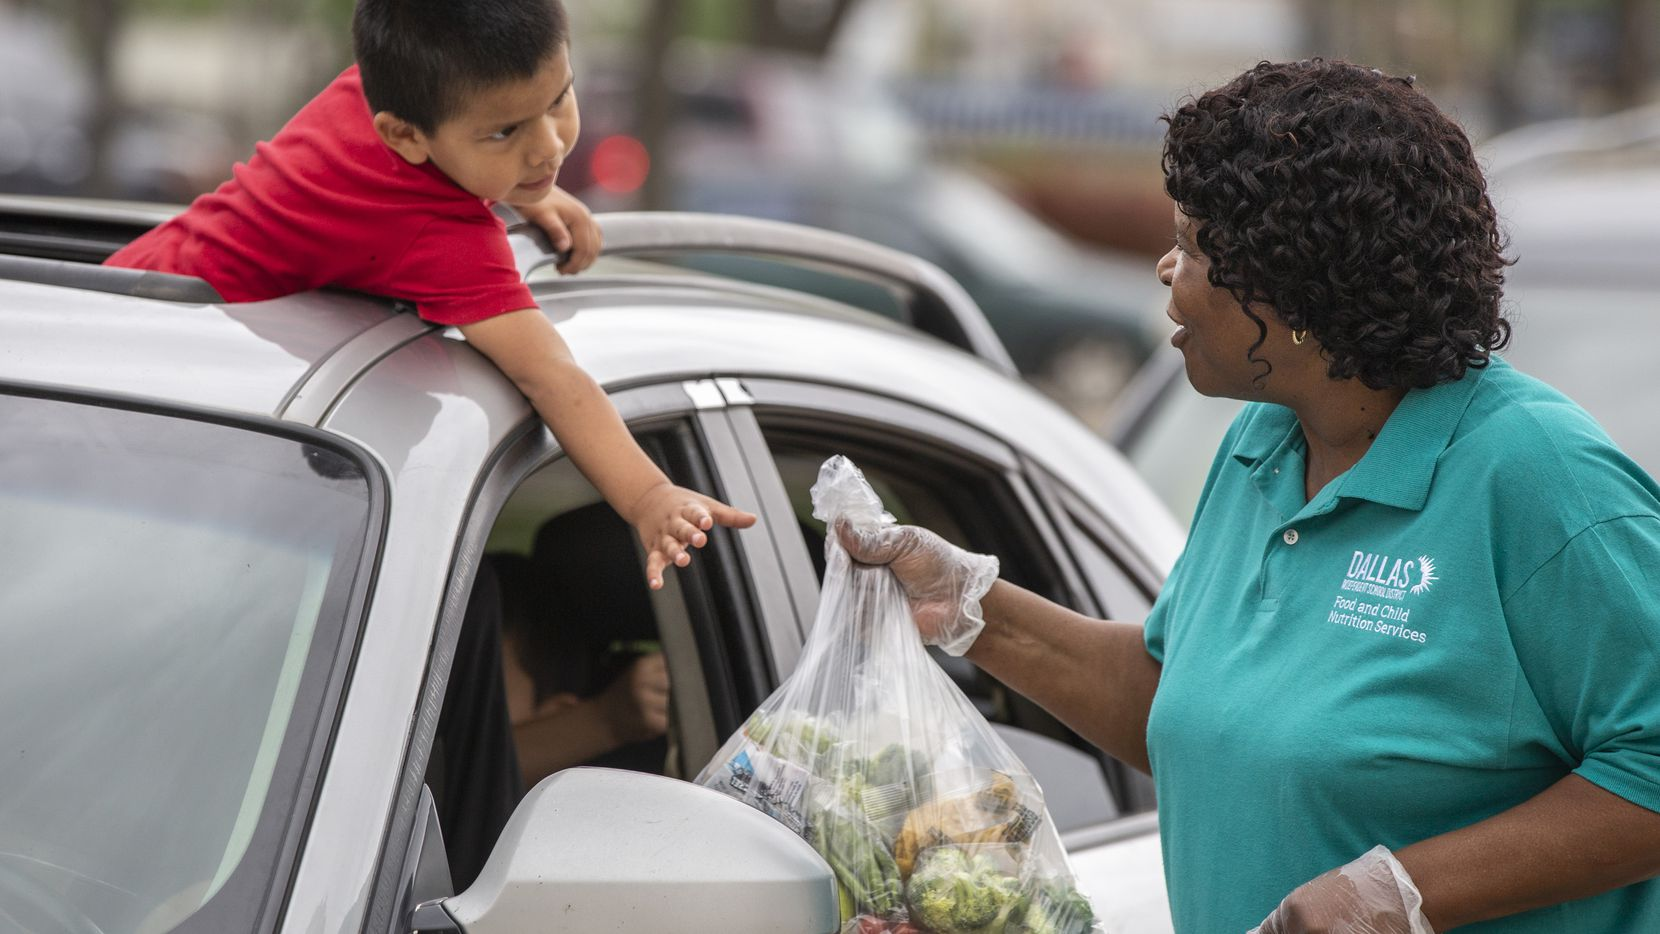 """As he hangs out of his family's car sunroof, Isaias Ovalle, 3, reaches for bagged school meals from food service supervisor Patricia Jackson (right) at Francisco """"Pancho"""" Medrano Middle School in Dallas on April 2, 2020. (Lynda M. Gonzalez/The Dallas Morning News)"""